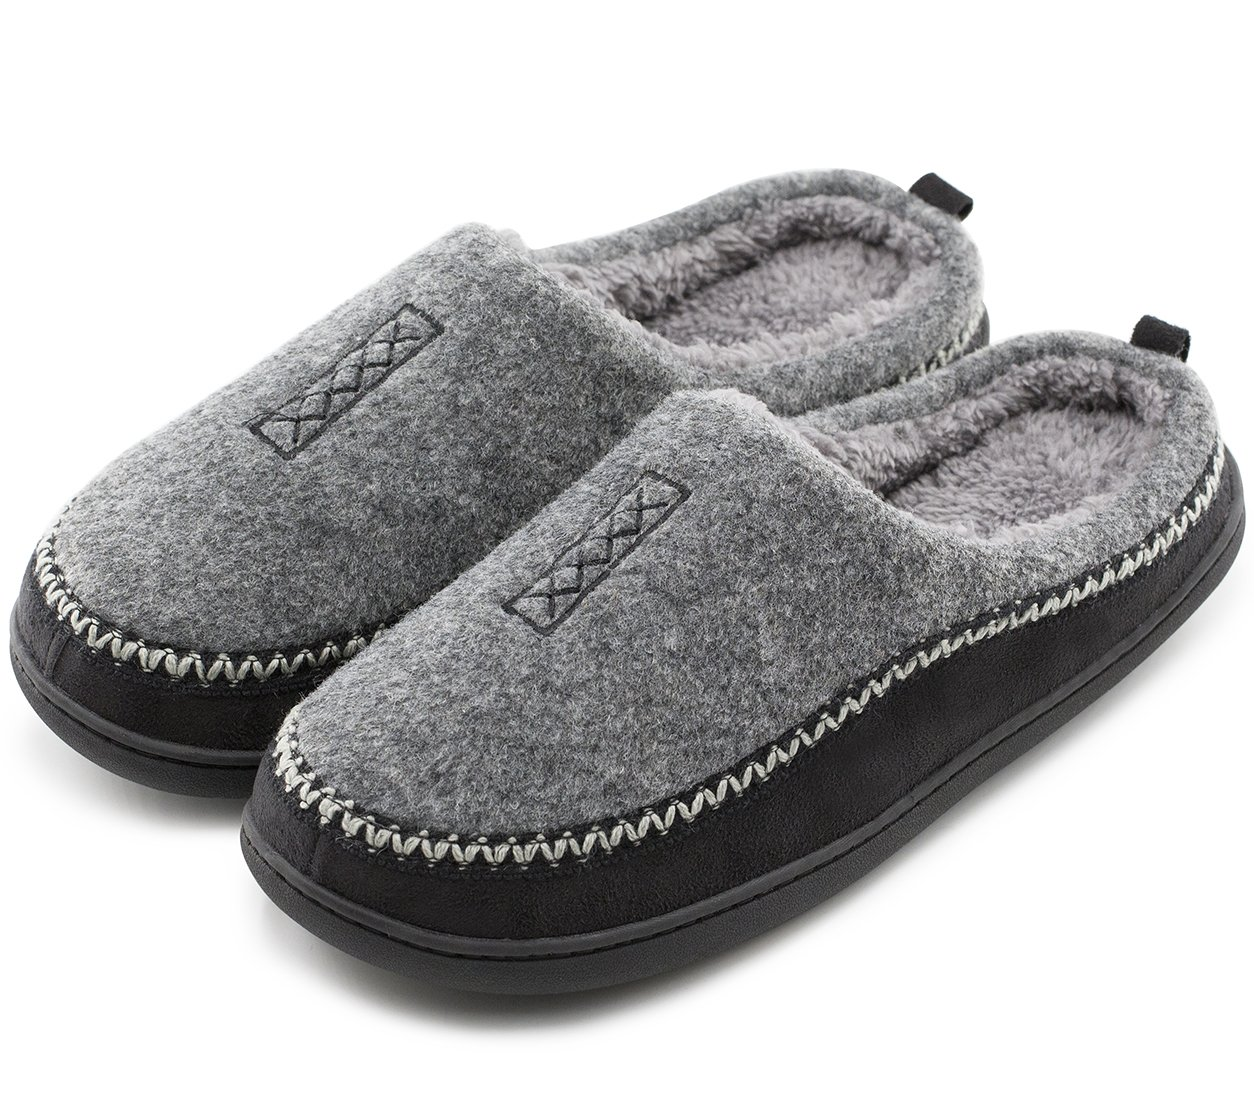 HomeTop Men's Indoor/Outdoor Wool Cross Decor Slip On Memory Foam Clog House Slippers (US Men's 11-12, Gray) by HomeTop